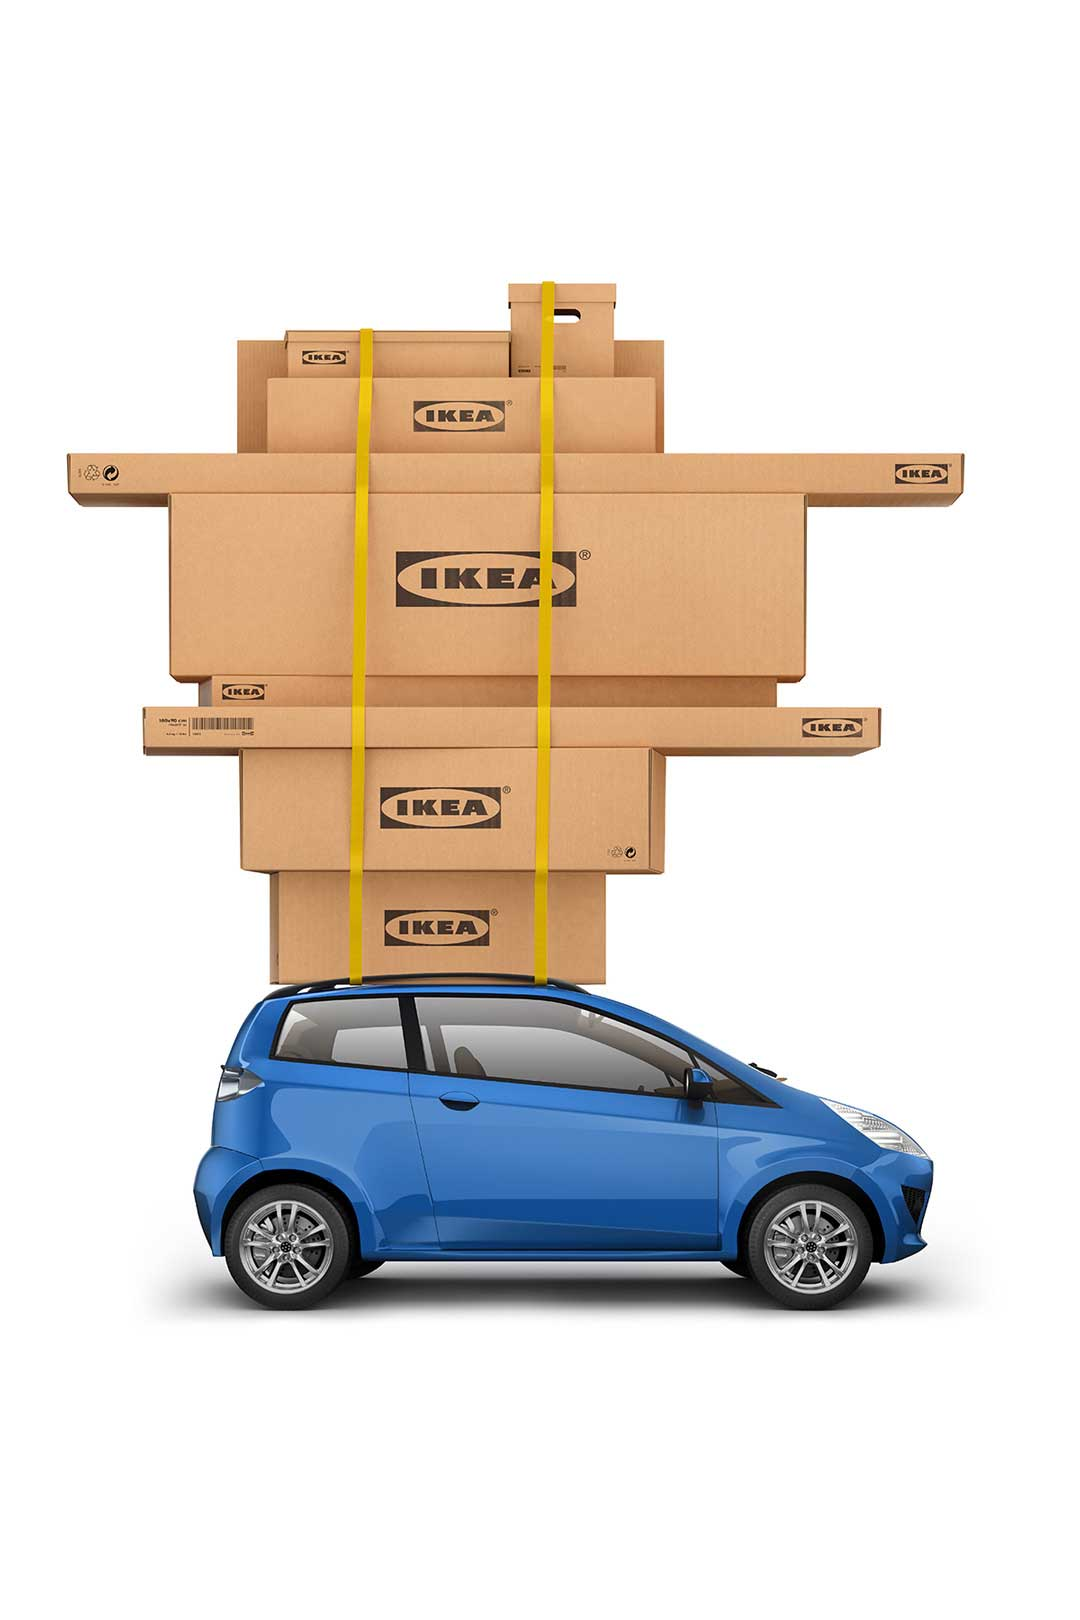 CGI-Boxes-packed-on-top-of-car-Eastern Affair